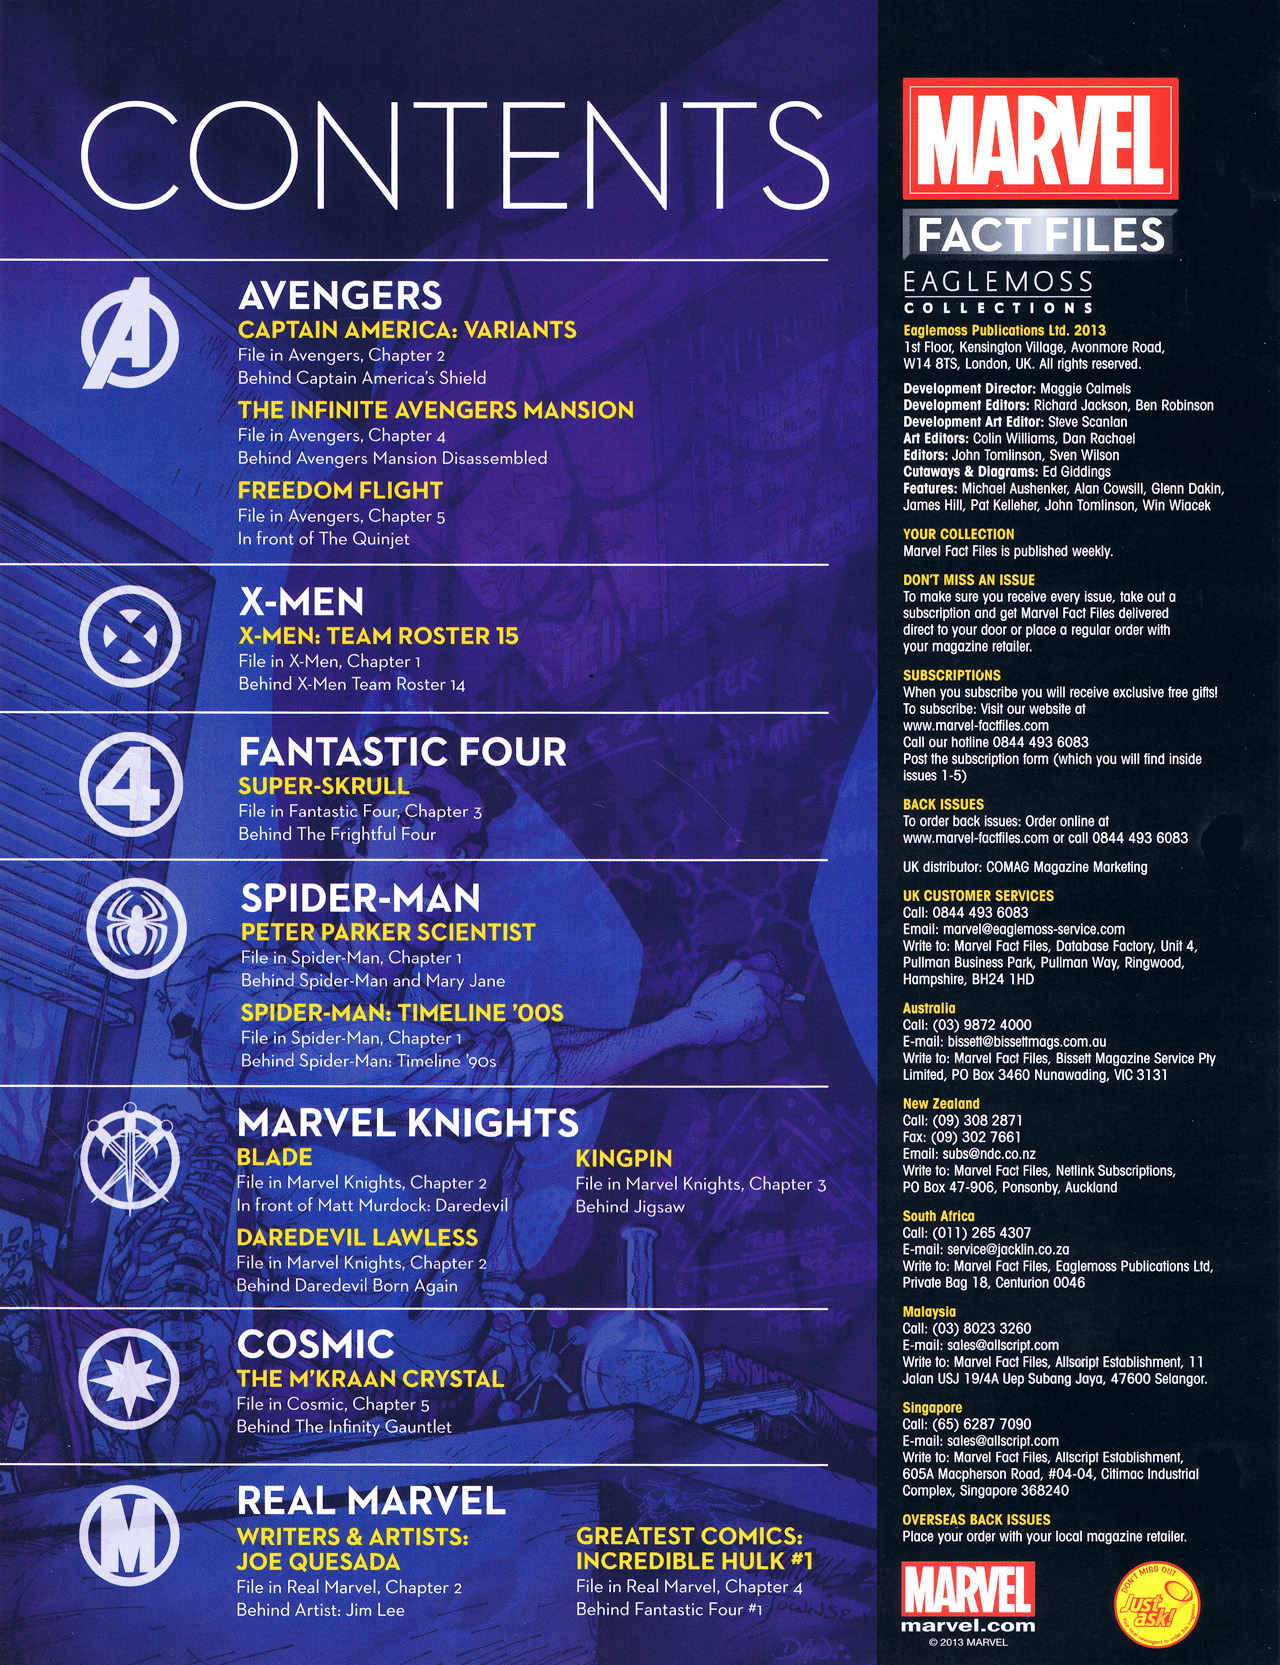 Marvel Fact Files 15 Page 2